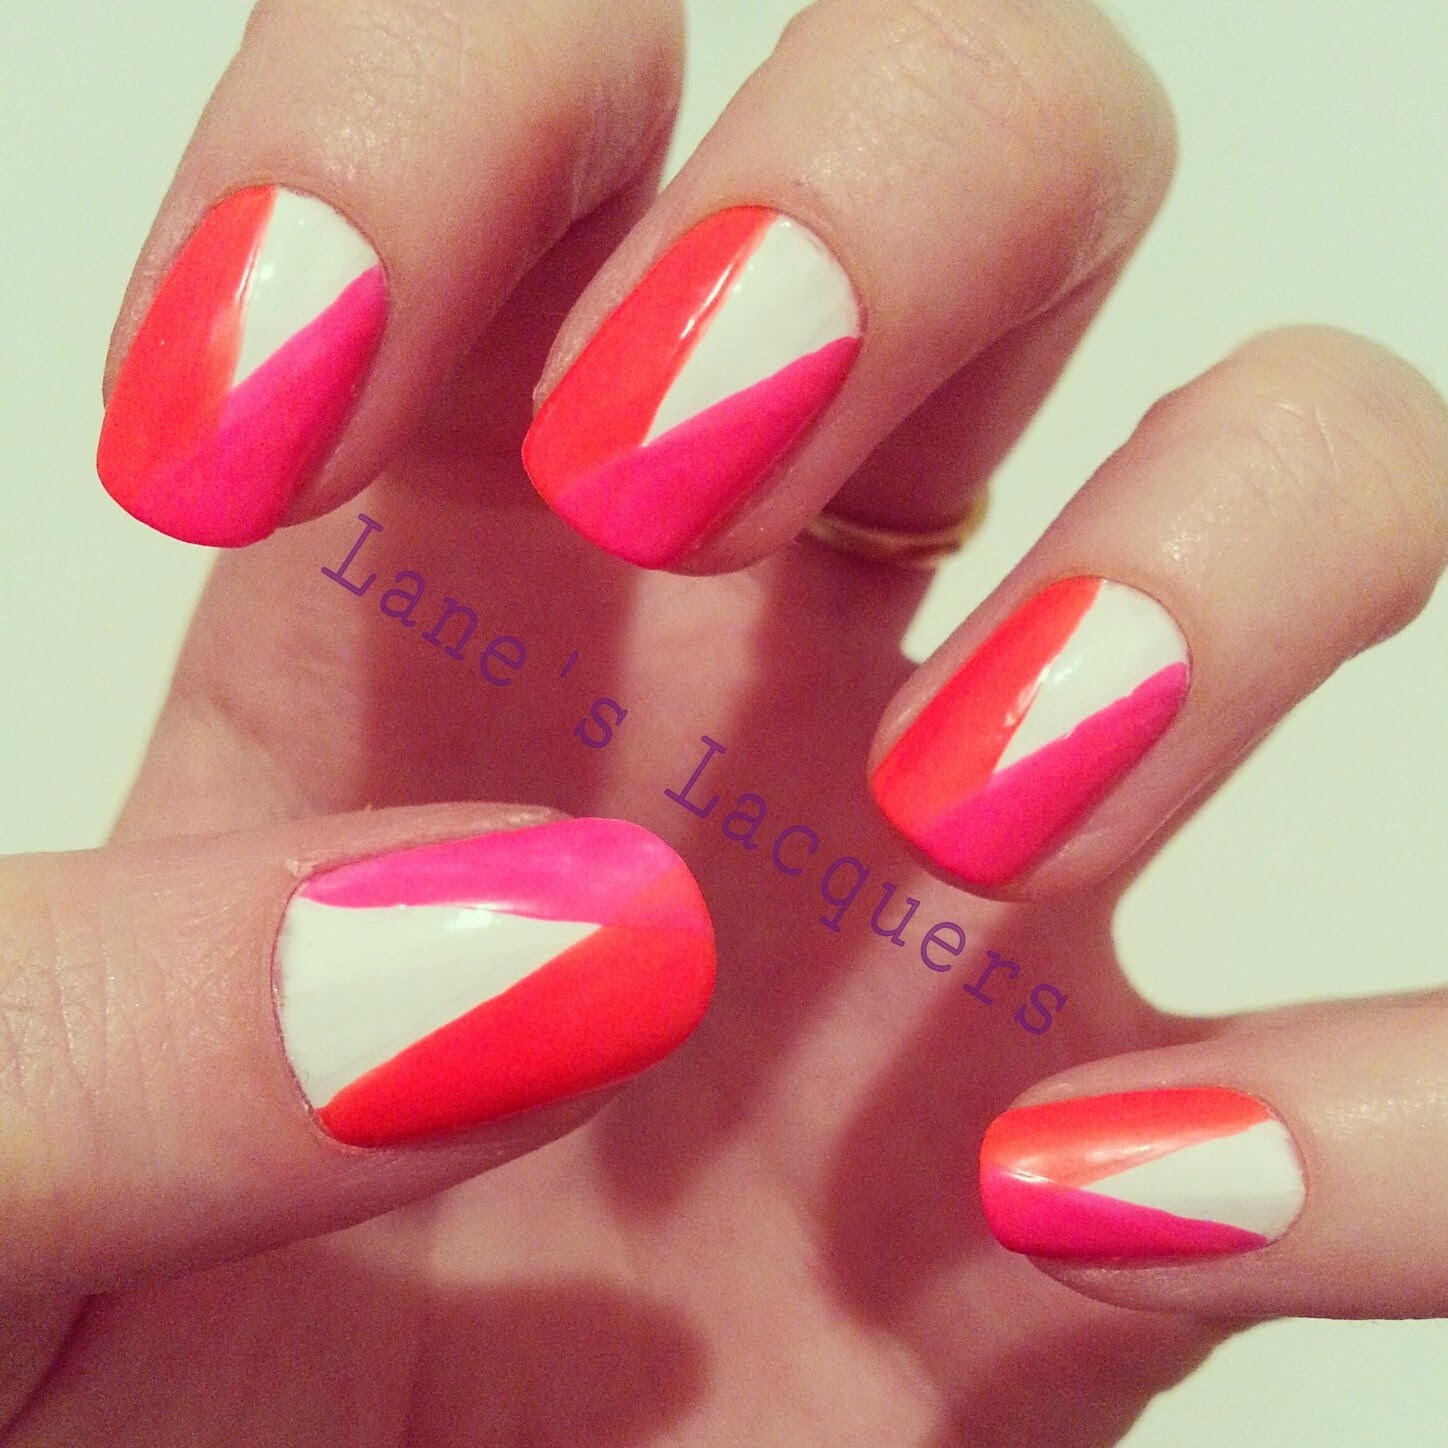 color-club-neon-white-simple-nail-art (2)